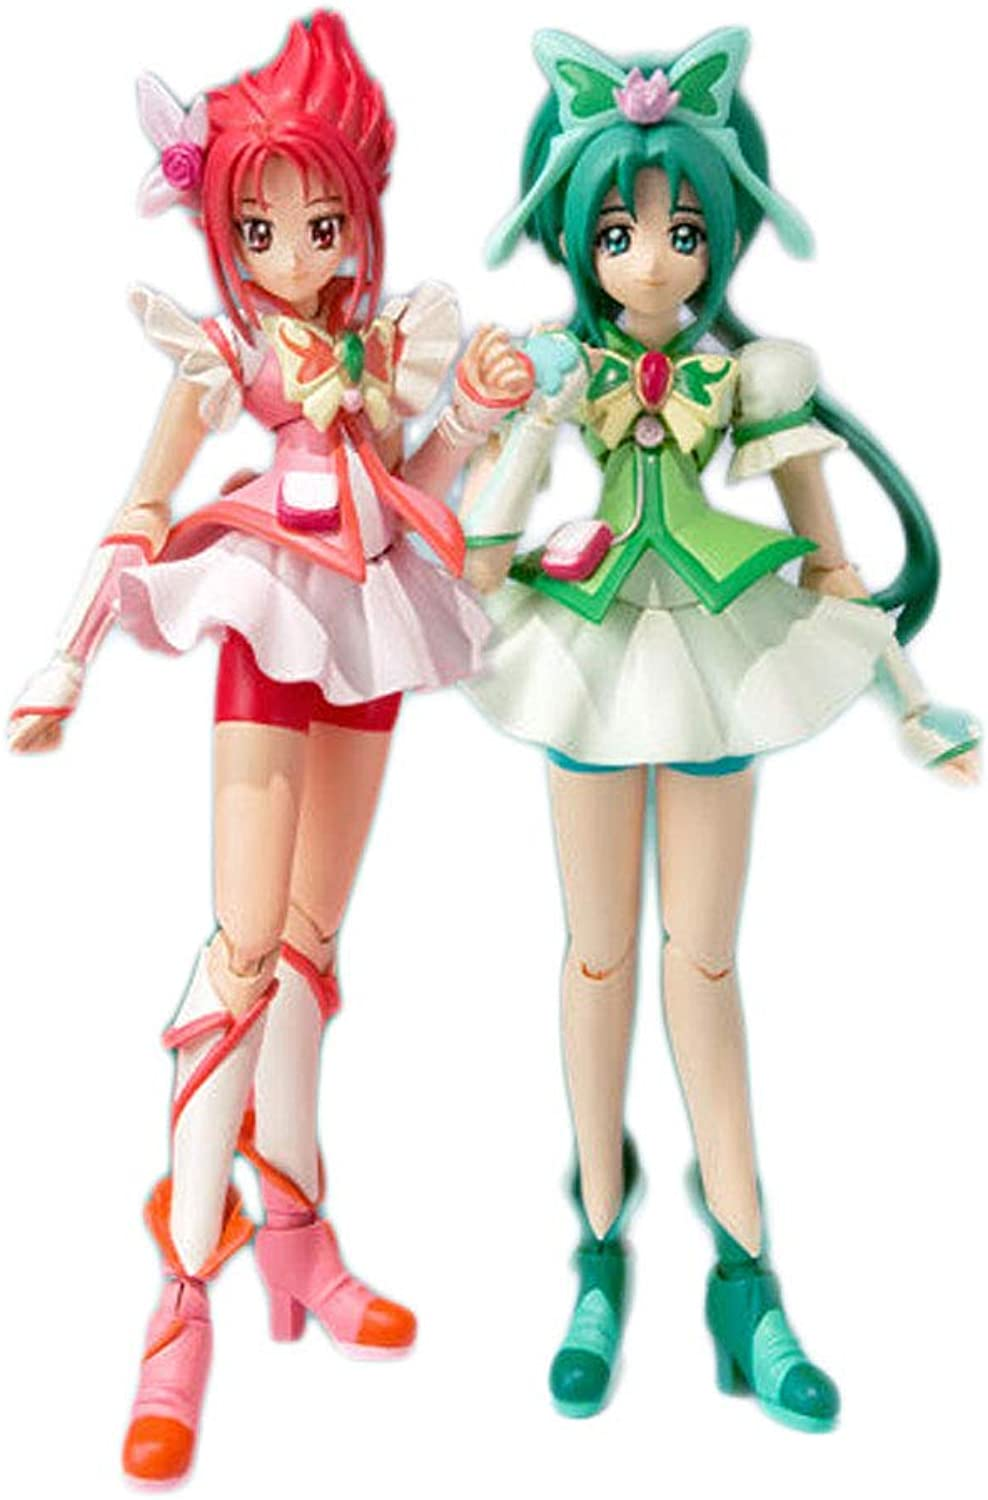 SH Figurarts Cure Mint & Cure red limited PreCure [Japan] (japan import)